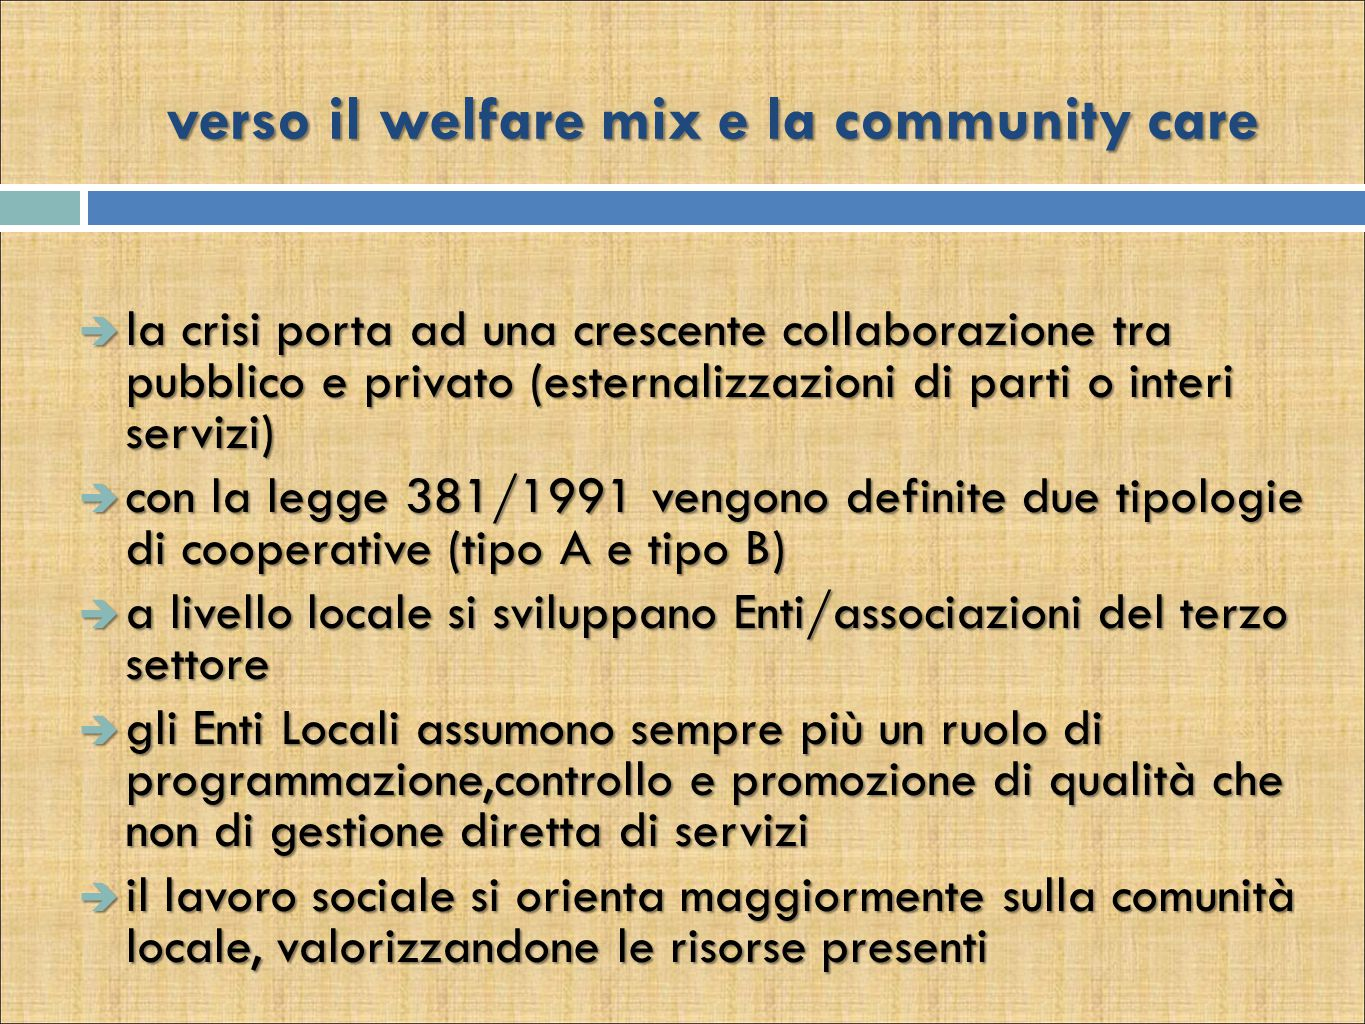 verso il welfare mix e la community care